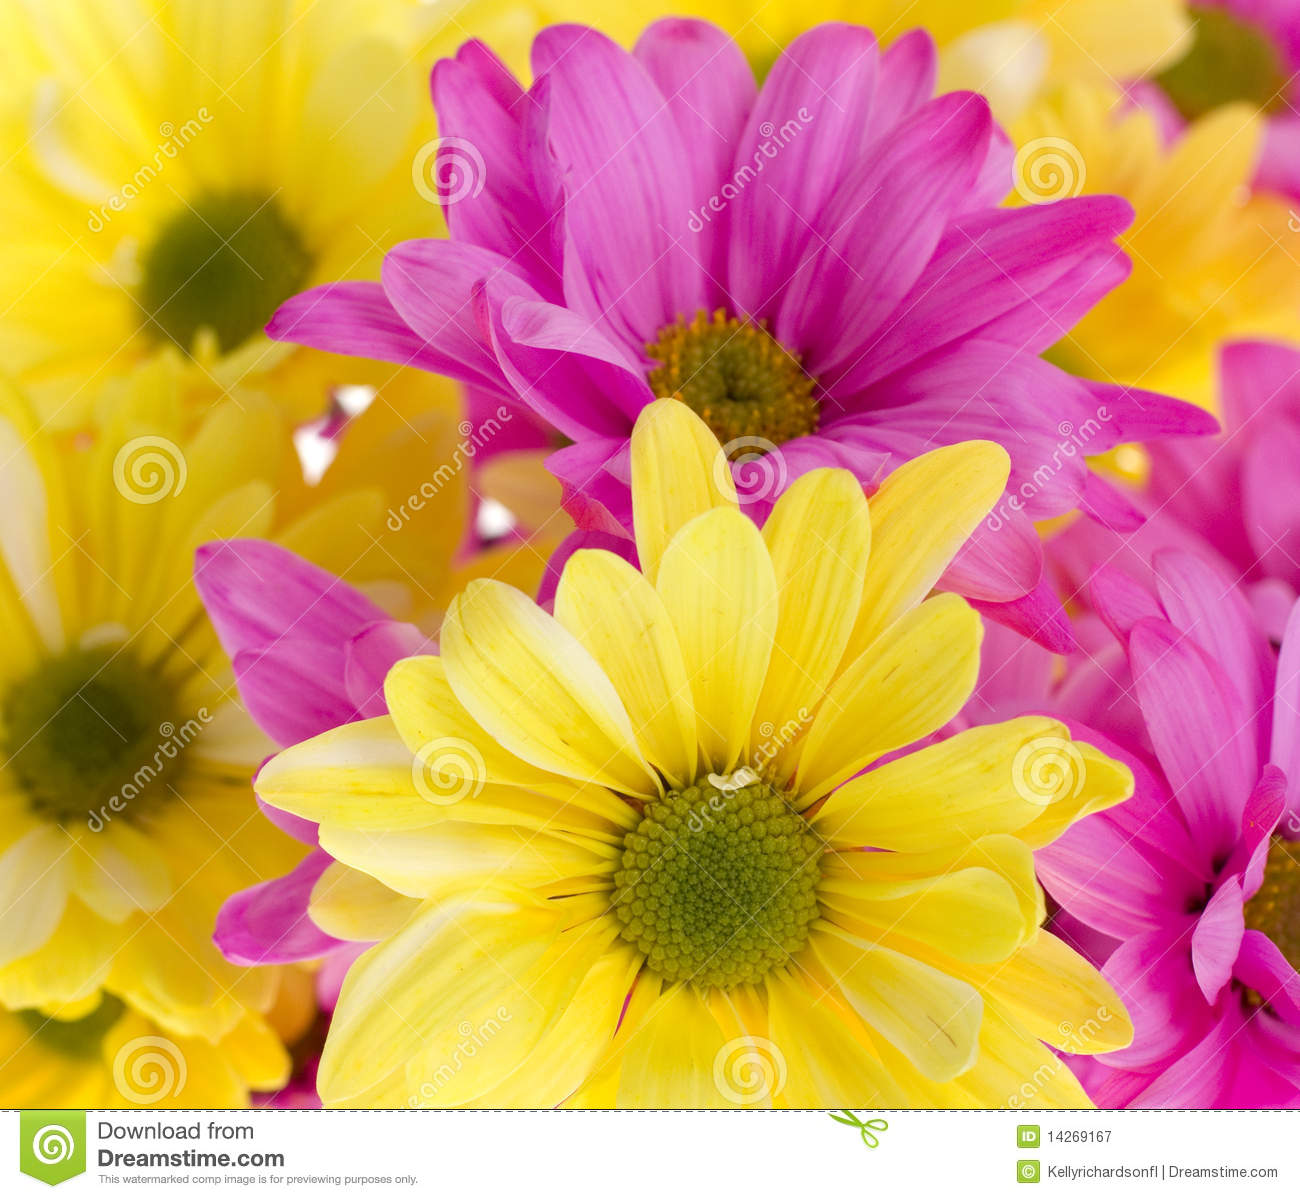 background yellow and pink daisy flowers royalty free